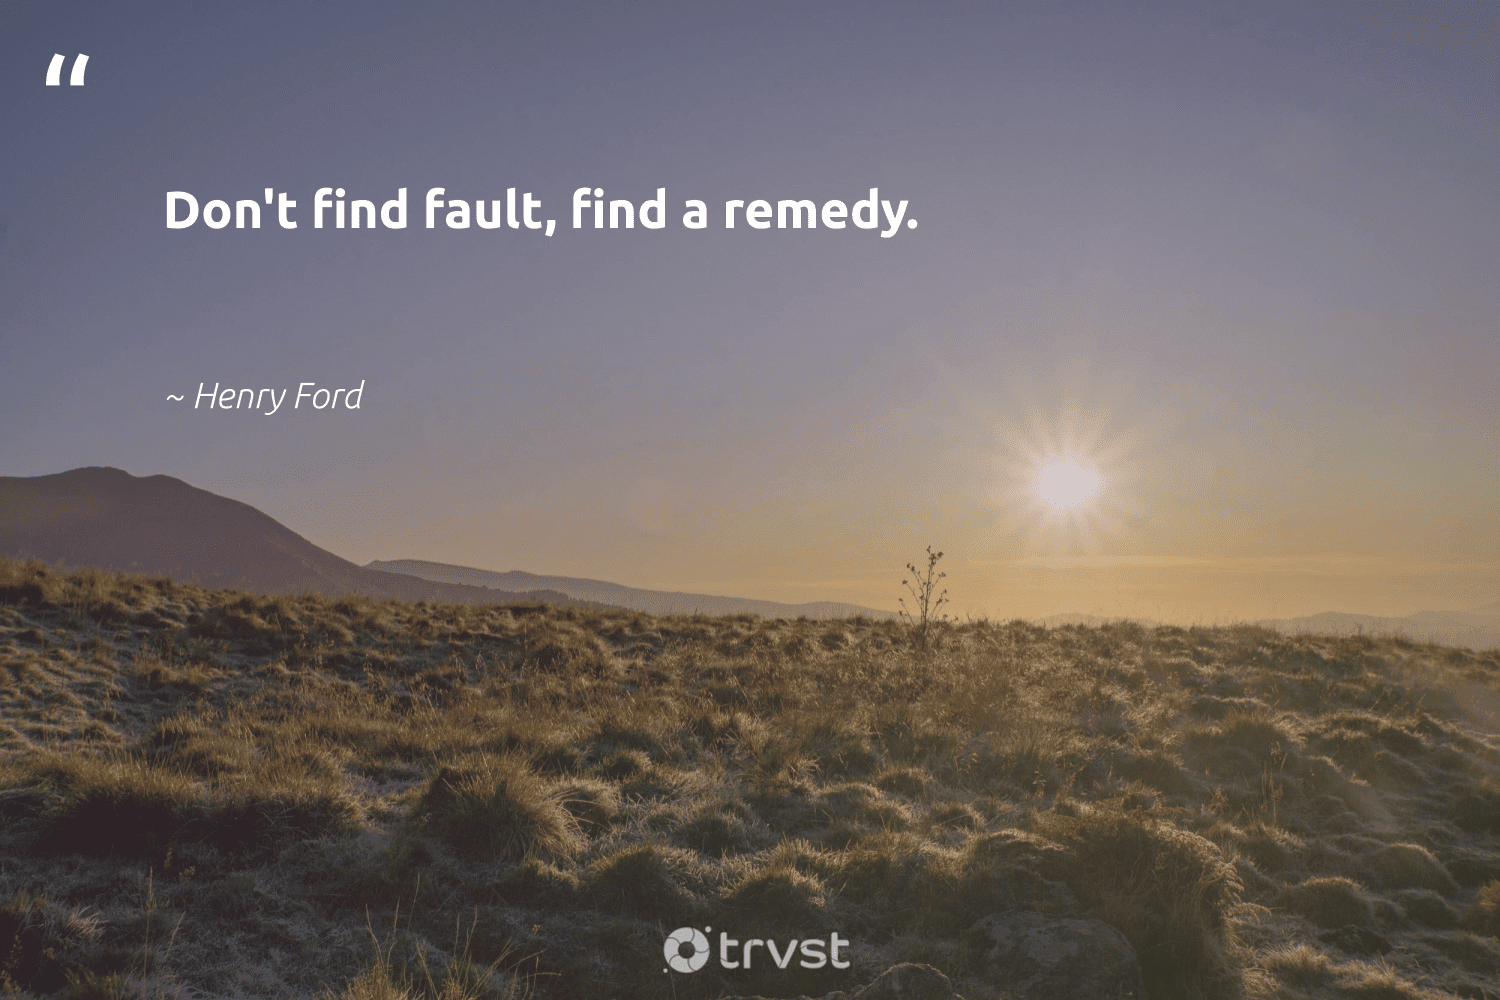 """""""Don't find fault, find a remedy.""""  - Henry Ford #trvst #quotes #nevergiveup #changetheworld #futureofwork #planetearthfirst #begreat #takeaction #softskills #beinspired #bethechange #dotherightthing"""